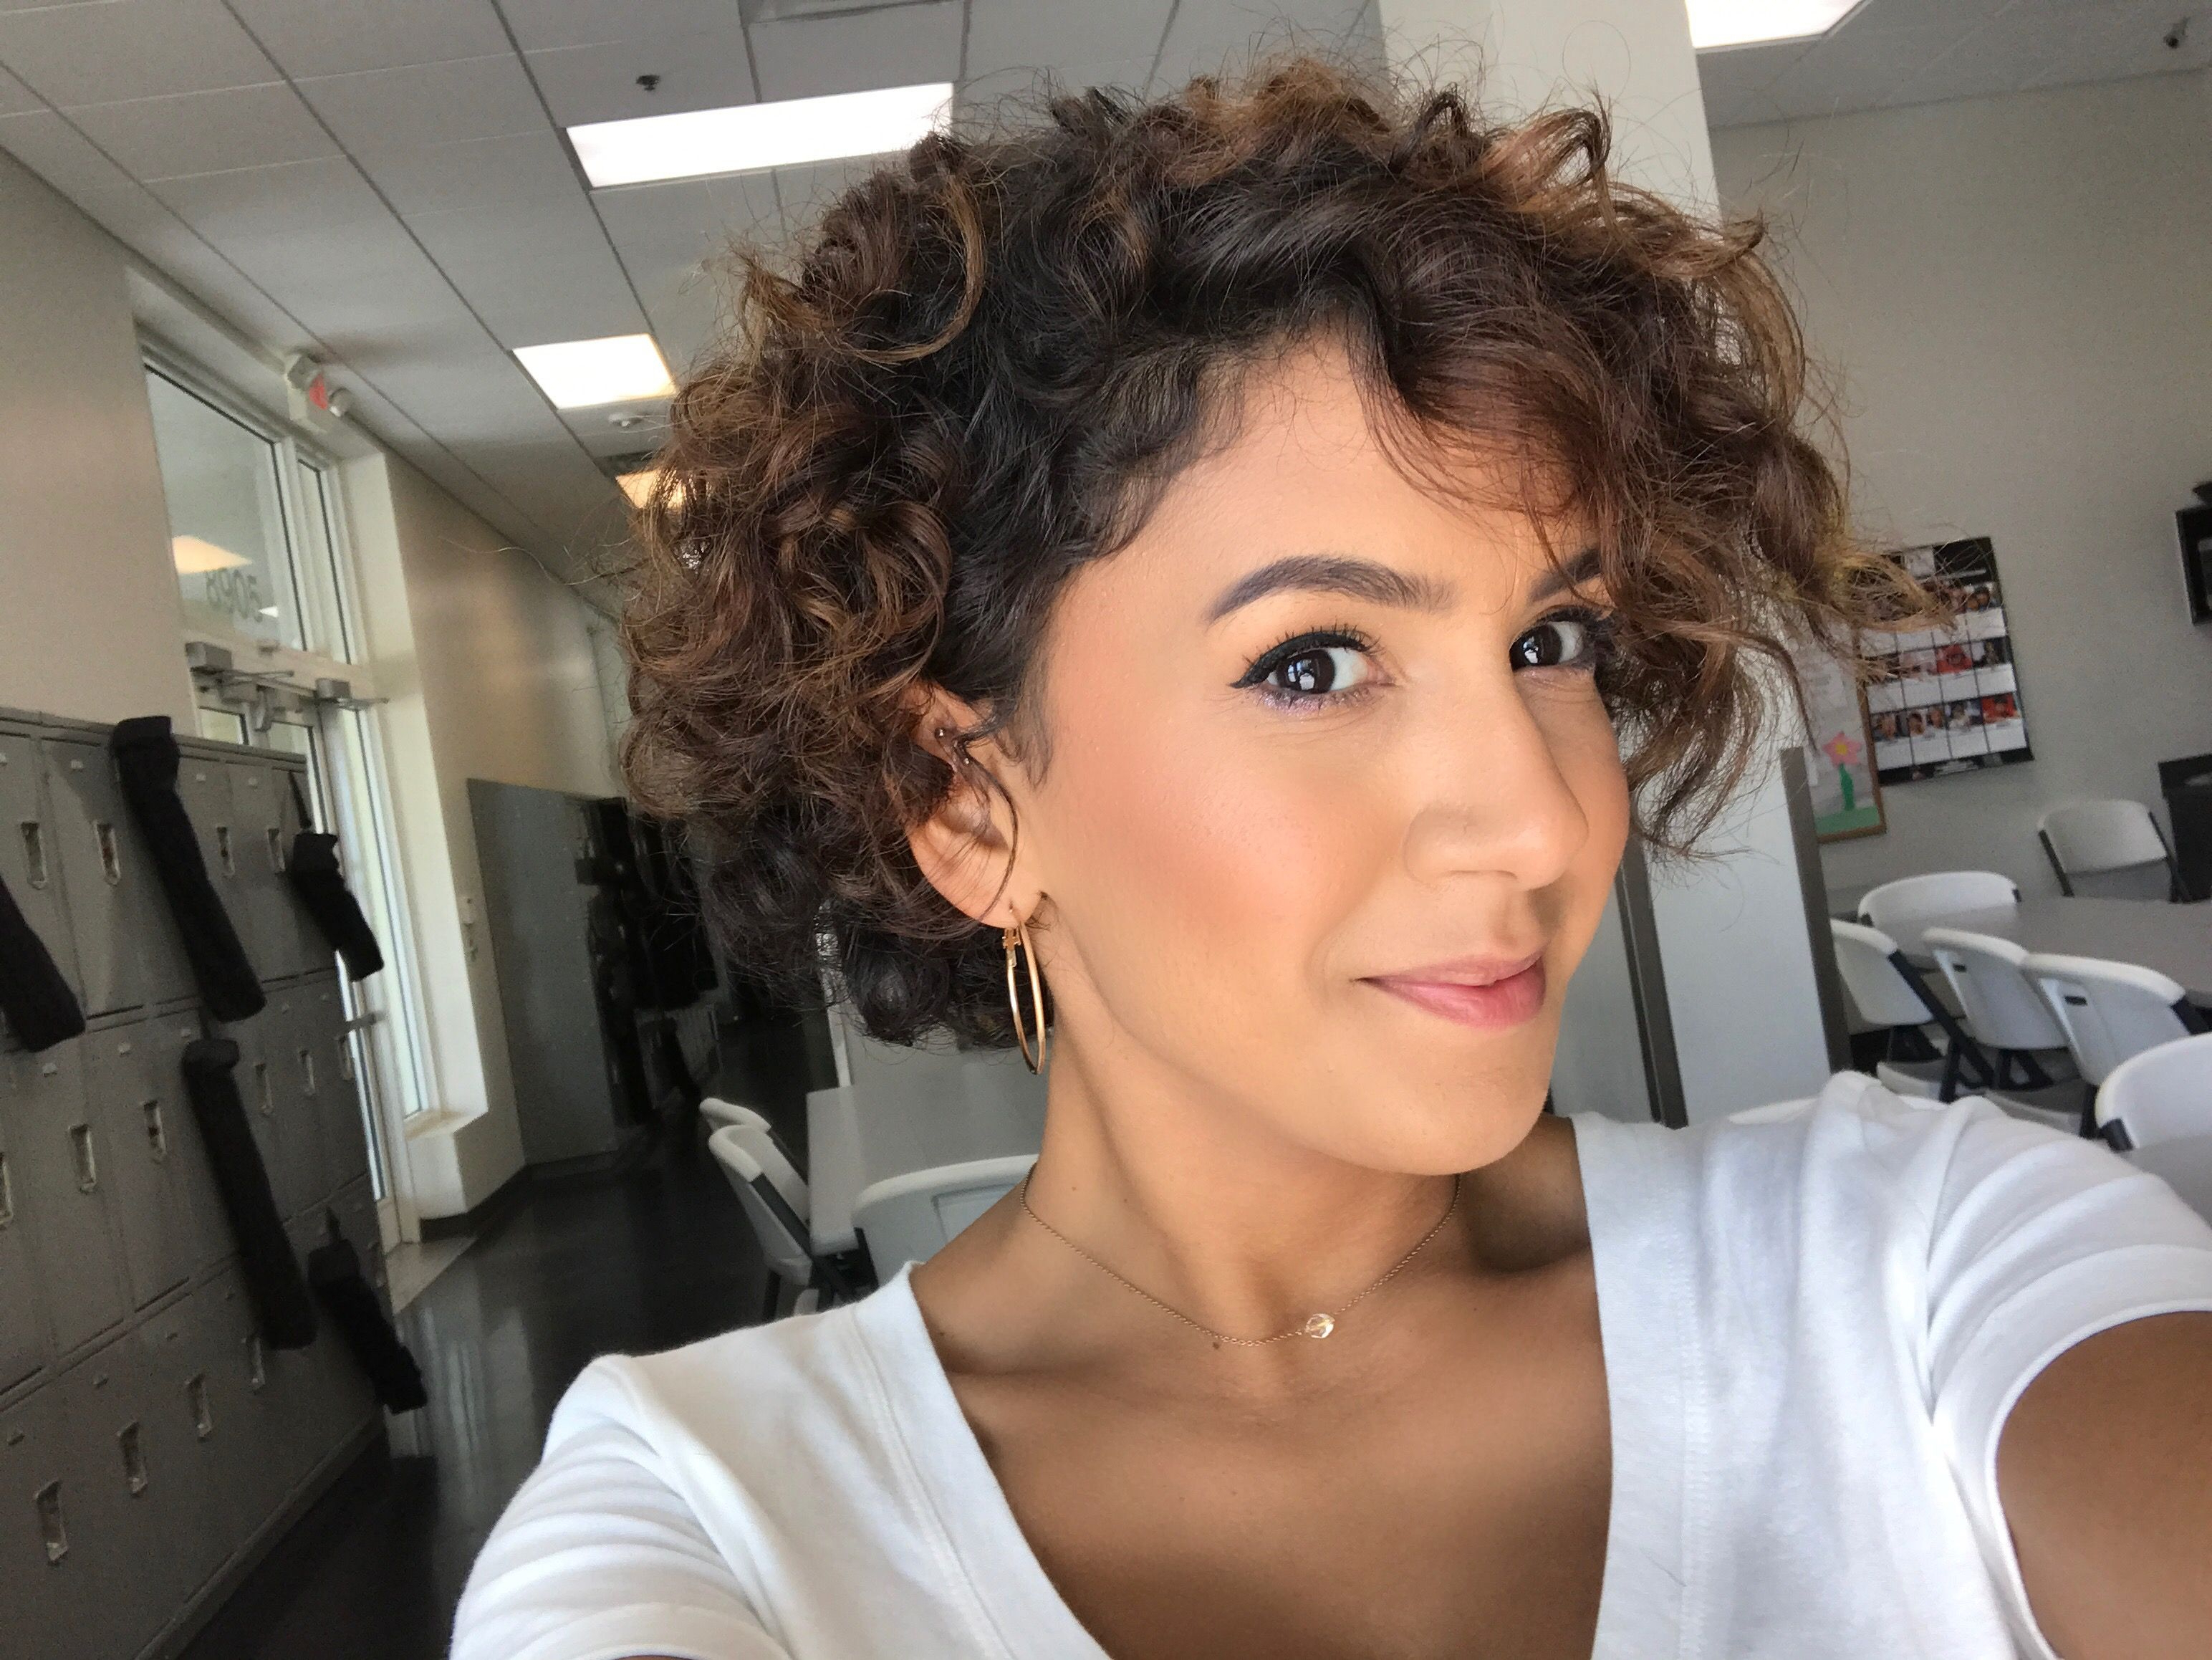 Amusing Short Curly Hairstyles Bob On Short Curly Bob Pixie Cut Inside Short Curly Hairstyles Tumblr (View 2 of 25)